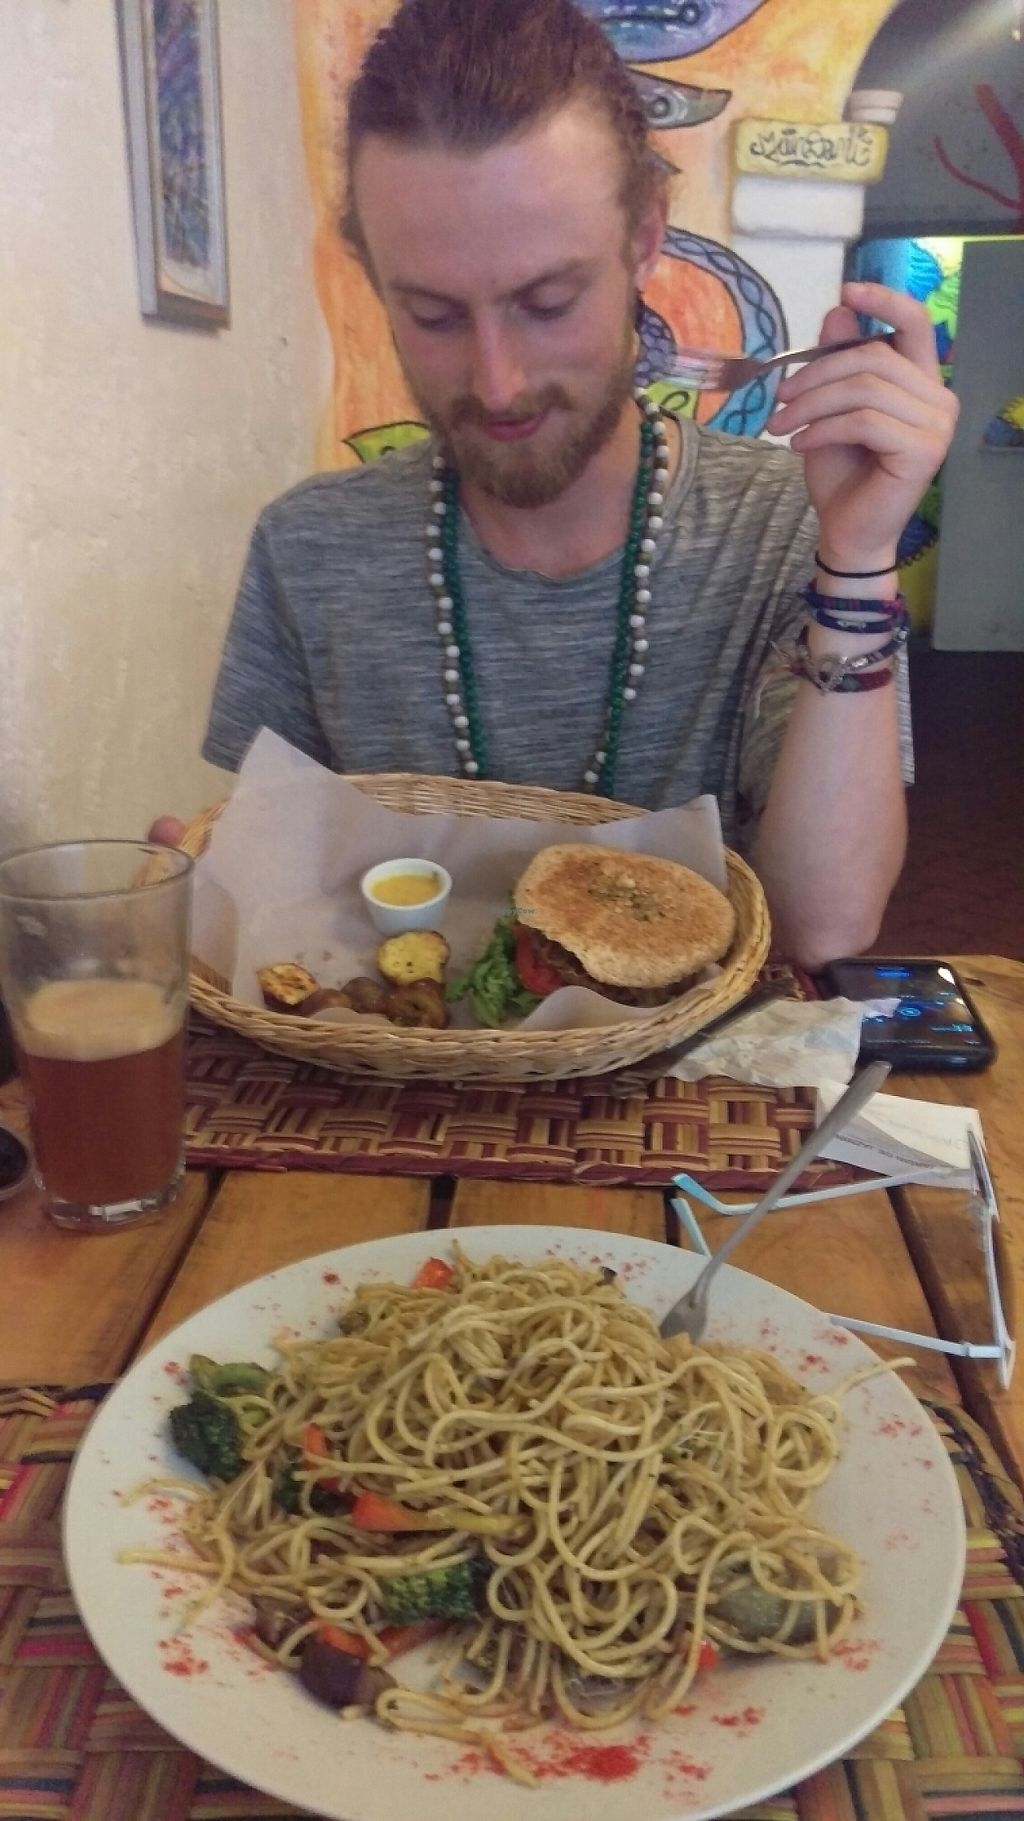 """Photo of El Jardin de Jazmin  by <a href=""""/members/profile/dustydope"""">dustydope</a> <br/>burger and pasta <br/> May 13, 2017  - <a href='/contact/abuse/image/58946/258488'>Report</a>"""